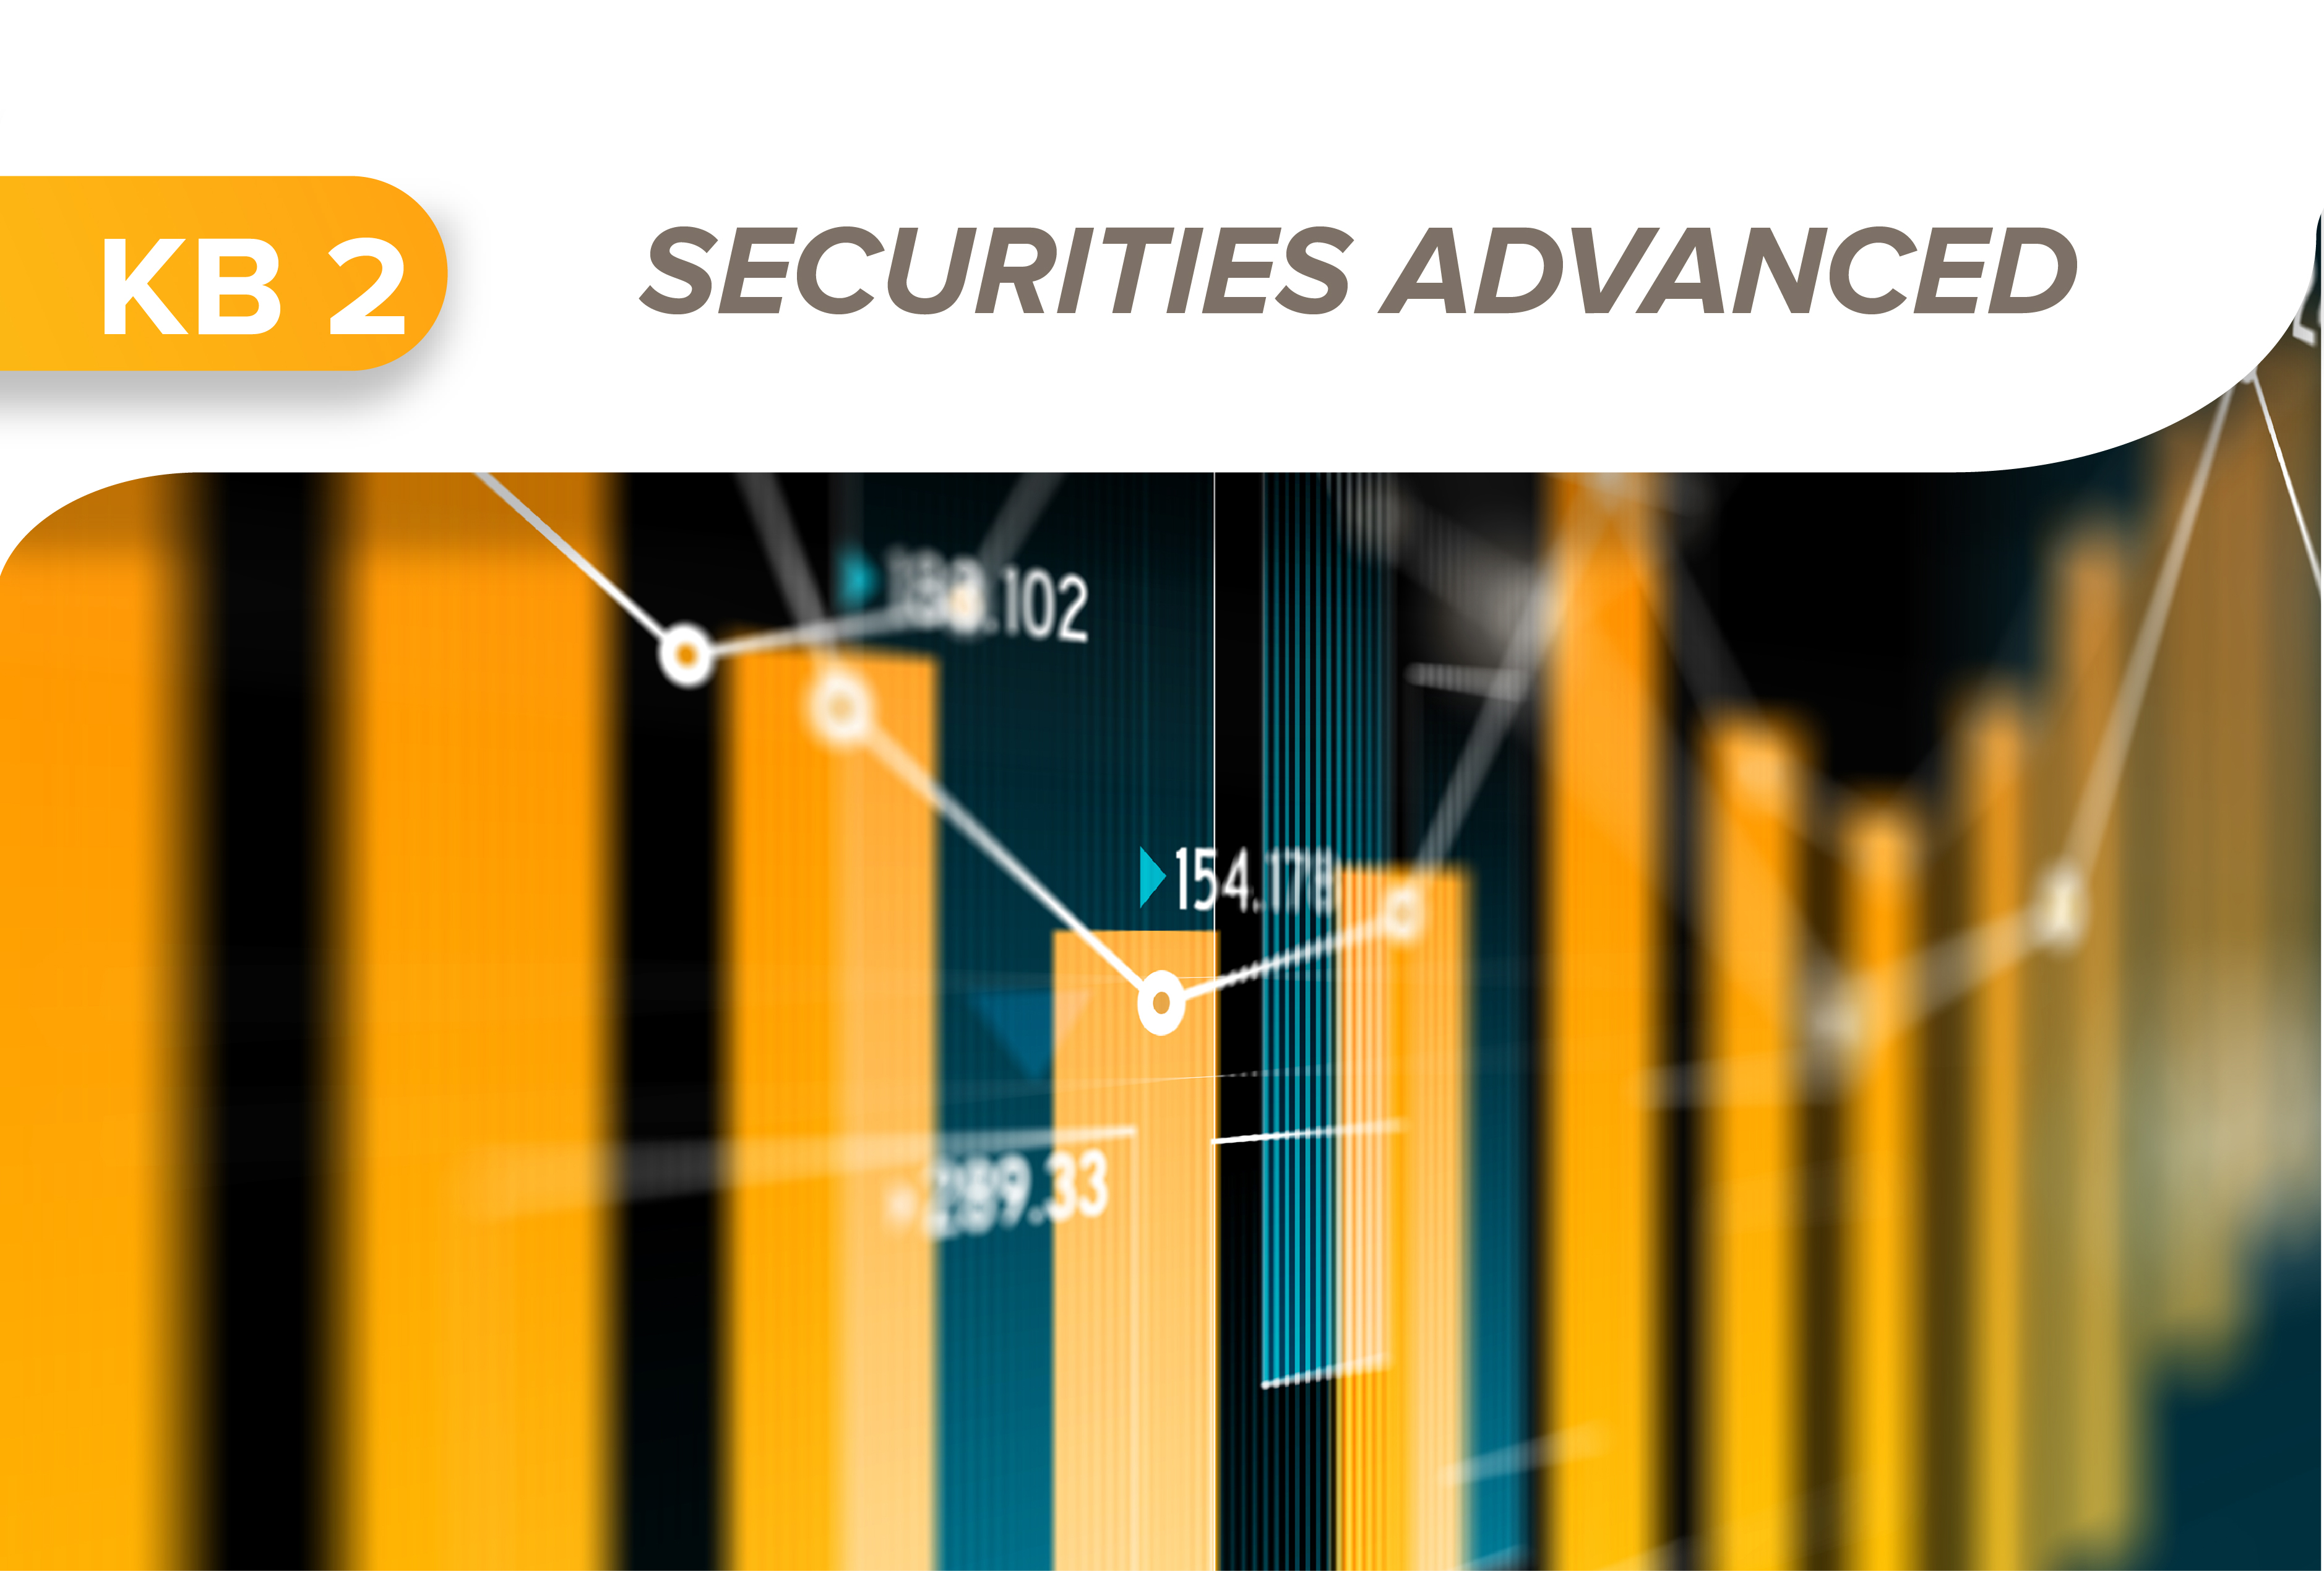 Securities advanced